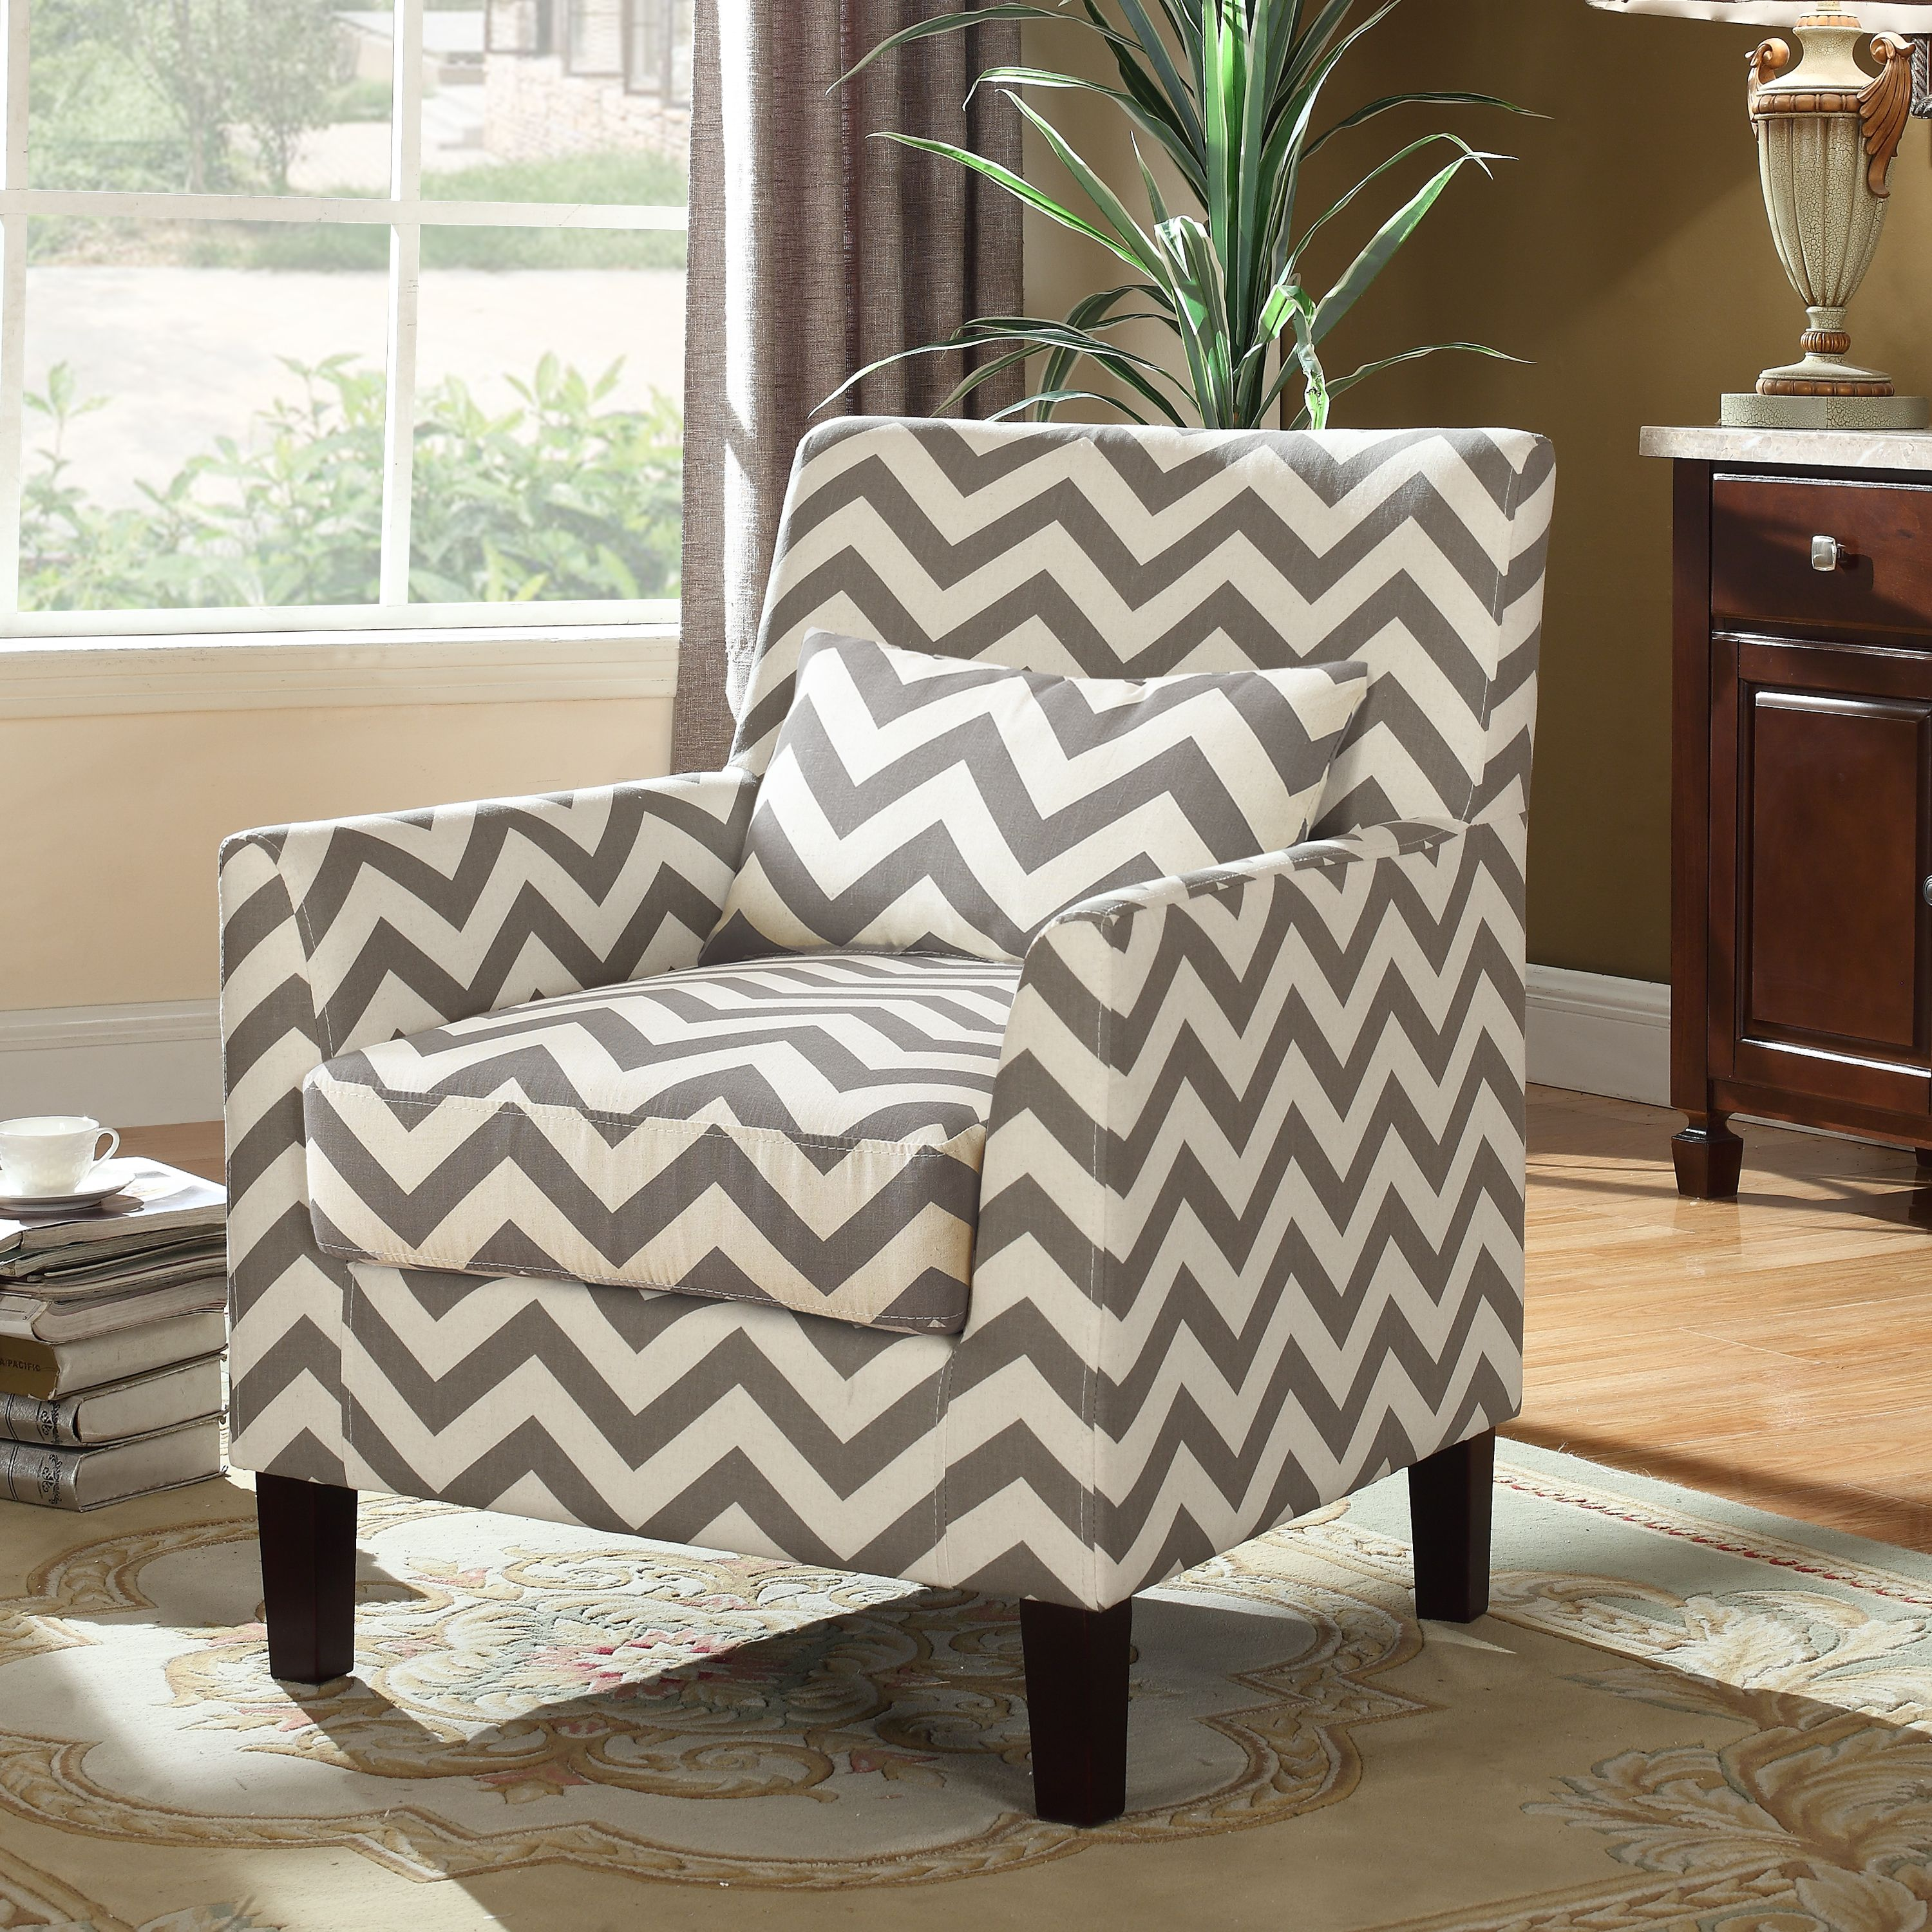 Home living room accents furniture accent chairs